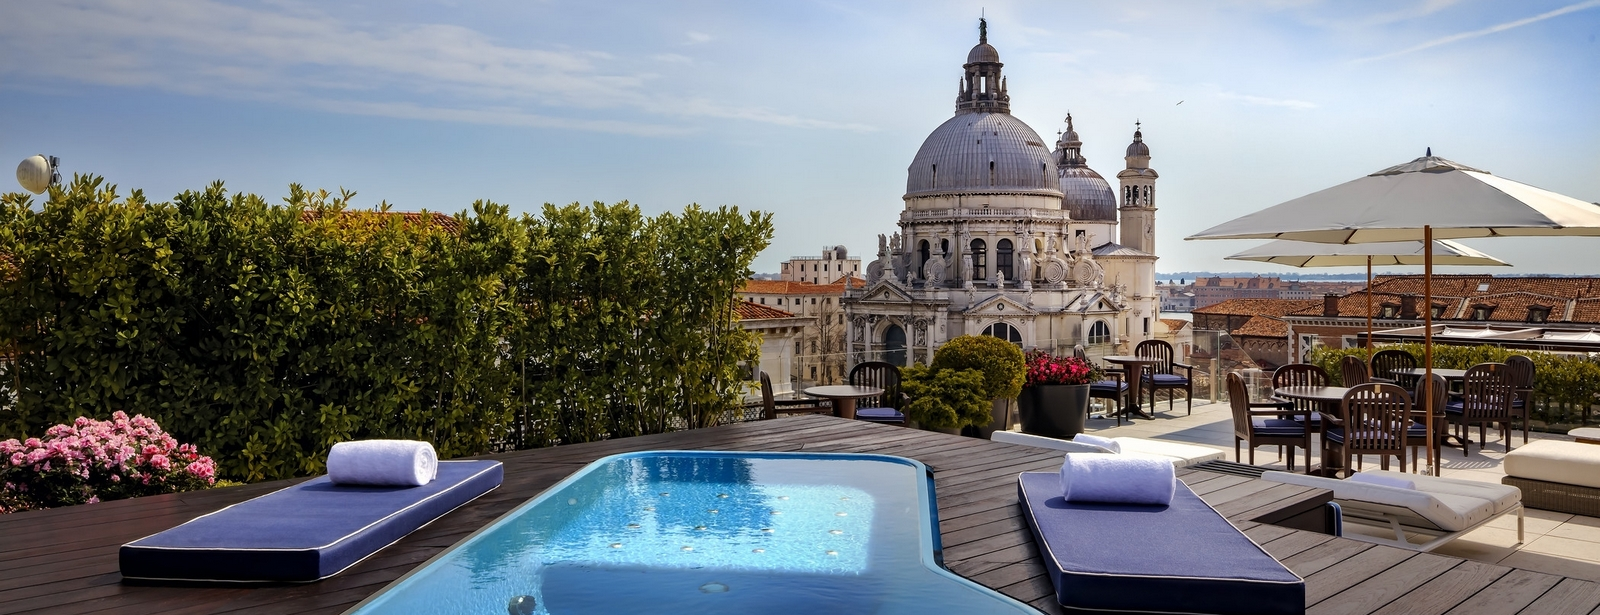 Terrazza Redentore Suite | The Gritti Palace | Venice